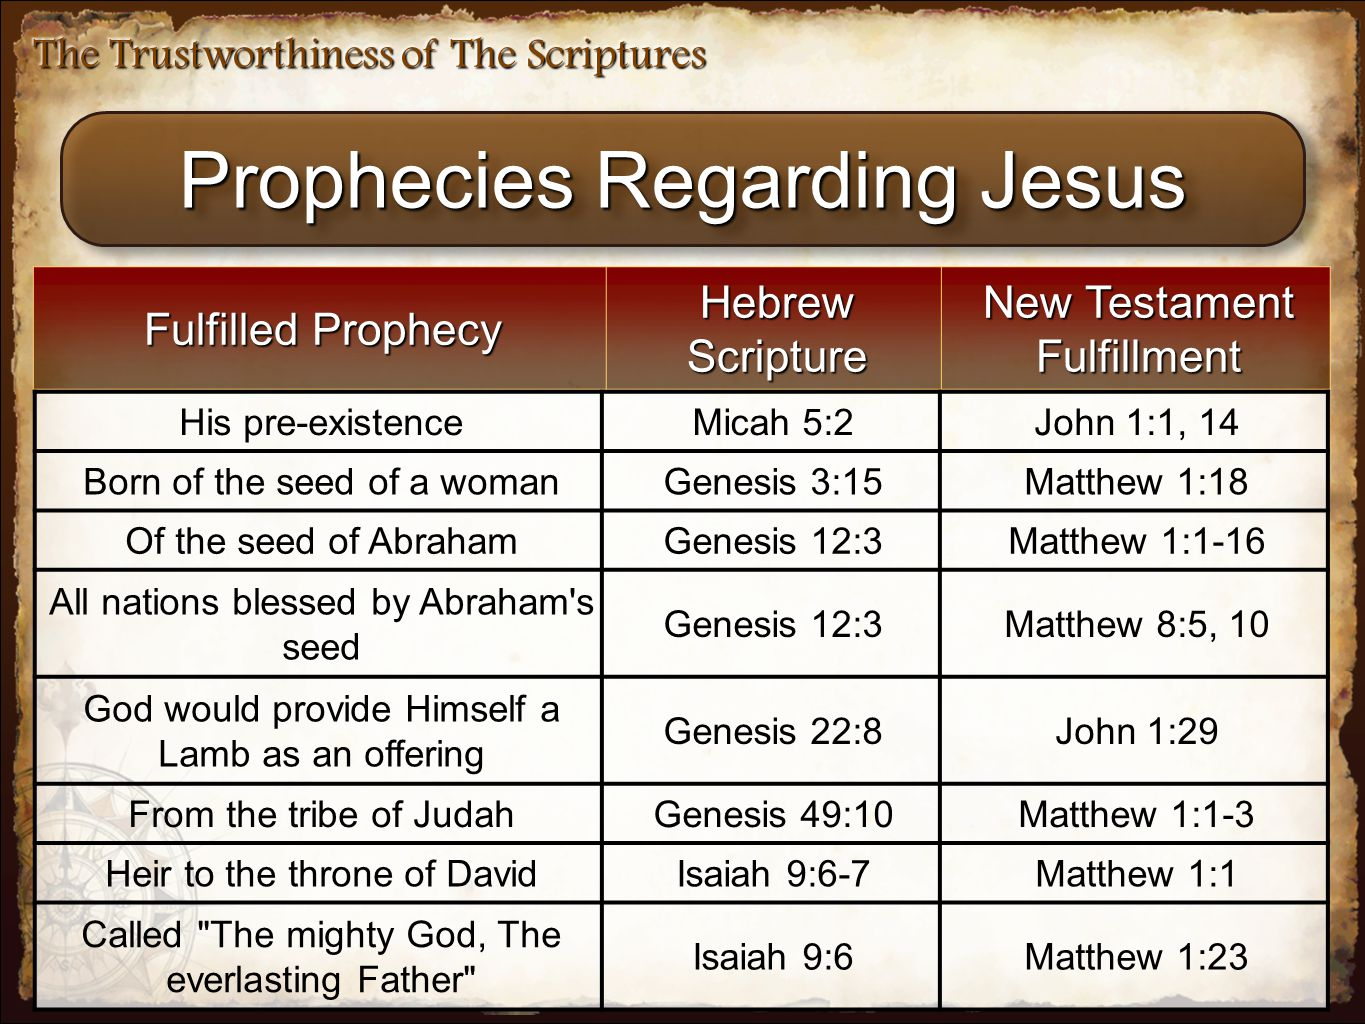 The Trustworthiness of The Scriptures Prophecies Regarding Jesus Fulfilled Prophecy Hebrew Scripture New Testament Fulfillment His pre-existenceMicah 5:2John 1:1, 14 Born of the seed of a womanGenesis 3:15Matthew 1:18 Of the seed of AbrahamGenesis 12:3Matthew 1:1-16 All nations blessed by Abraham s seed Genesis 12:3Matthew 8:5, 10 God would provide Himself a Lamb as an offering Genesis 22:8John 1:29 From the tribe of JudahGenesis 49:10Matthew 1:1-3 Heir to the throne of DavidIsaiah 9:6-7Matthew 1:1 Called The mighty God, The everlasting Father Isaiah 9:6Matthew 1:23